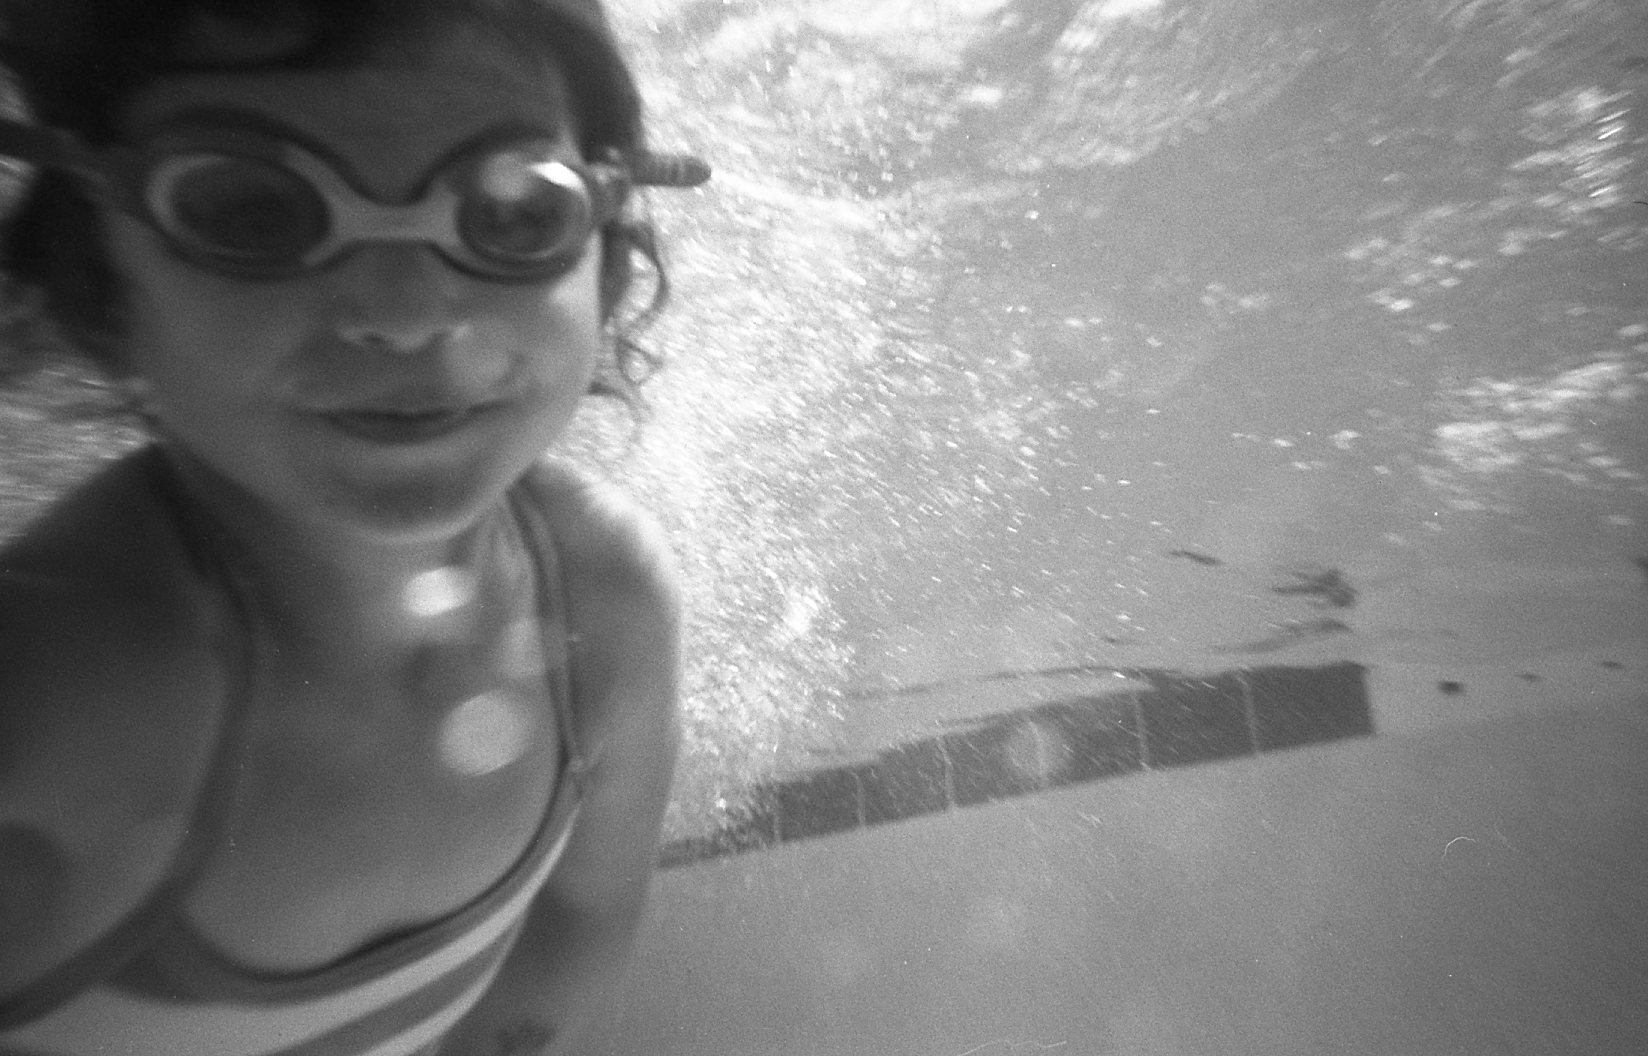 using the Snap Sights underwater camera in the pool